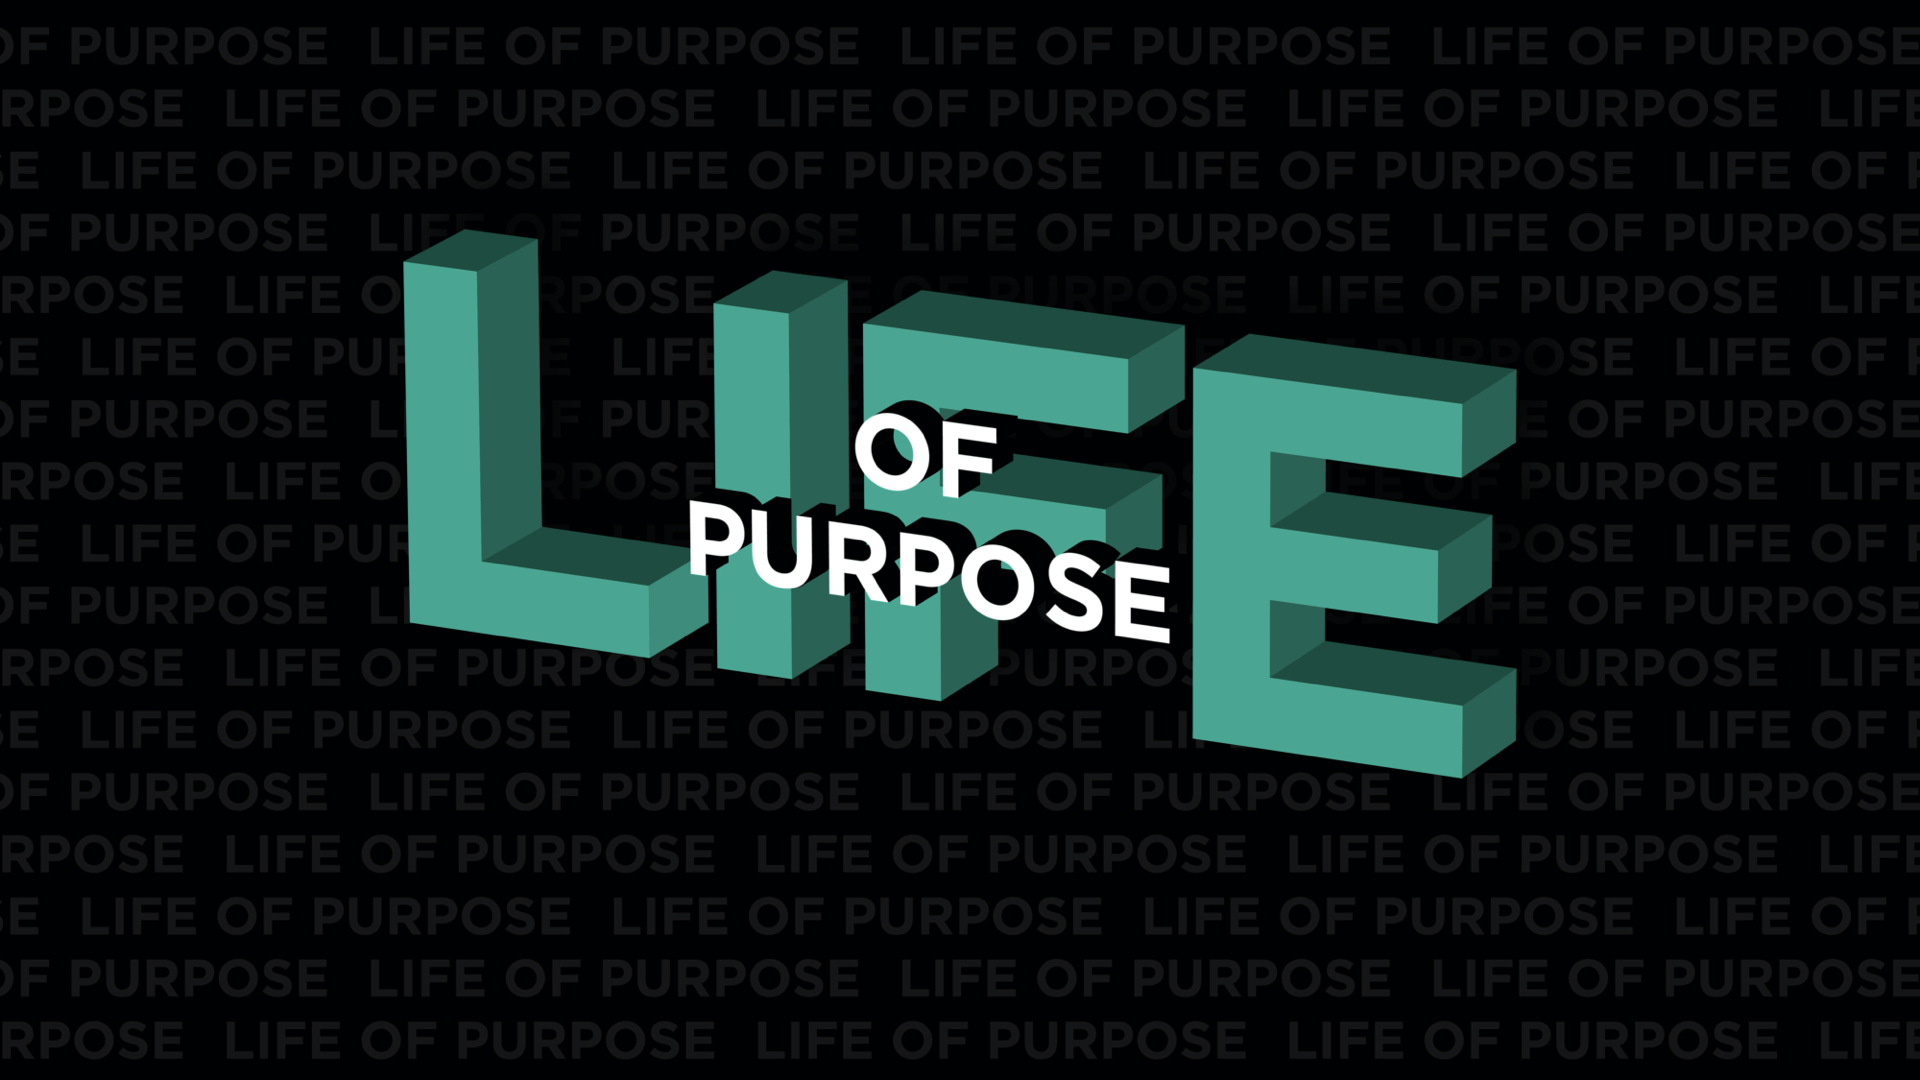 Click here for video and sermon notes – Life of Purpose (Part 2) – Ps. Johan Minnaar